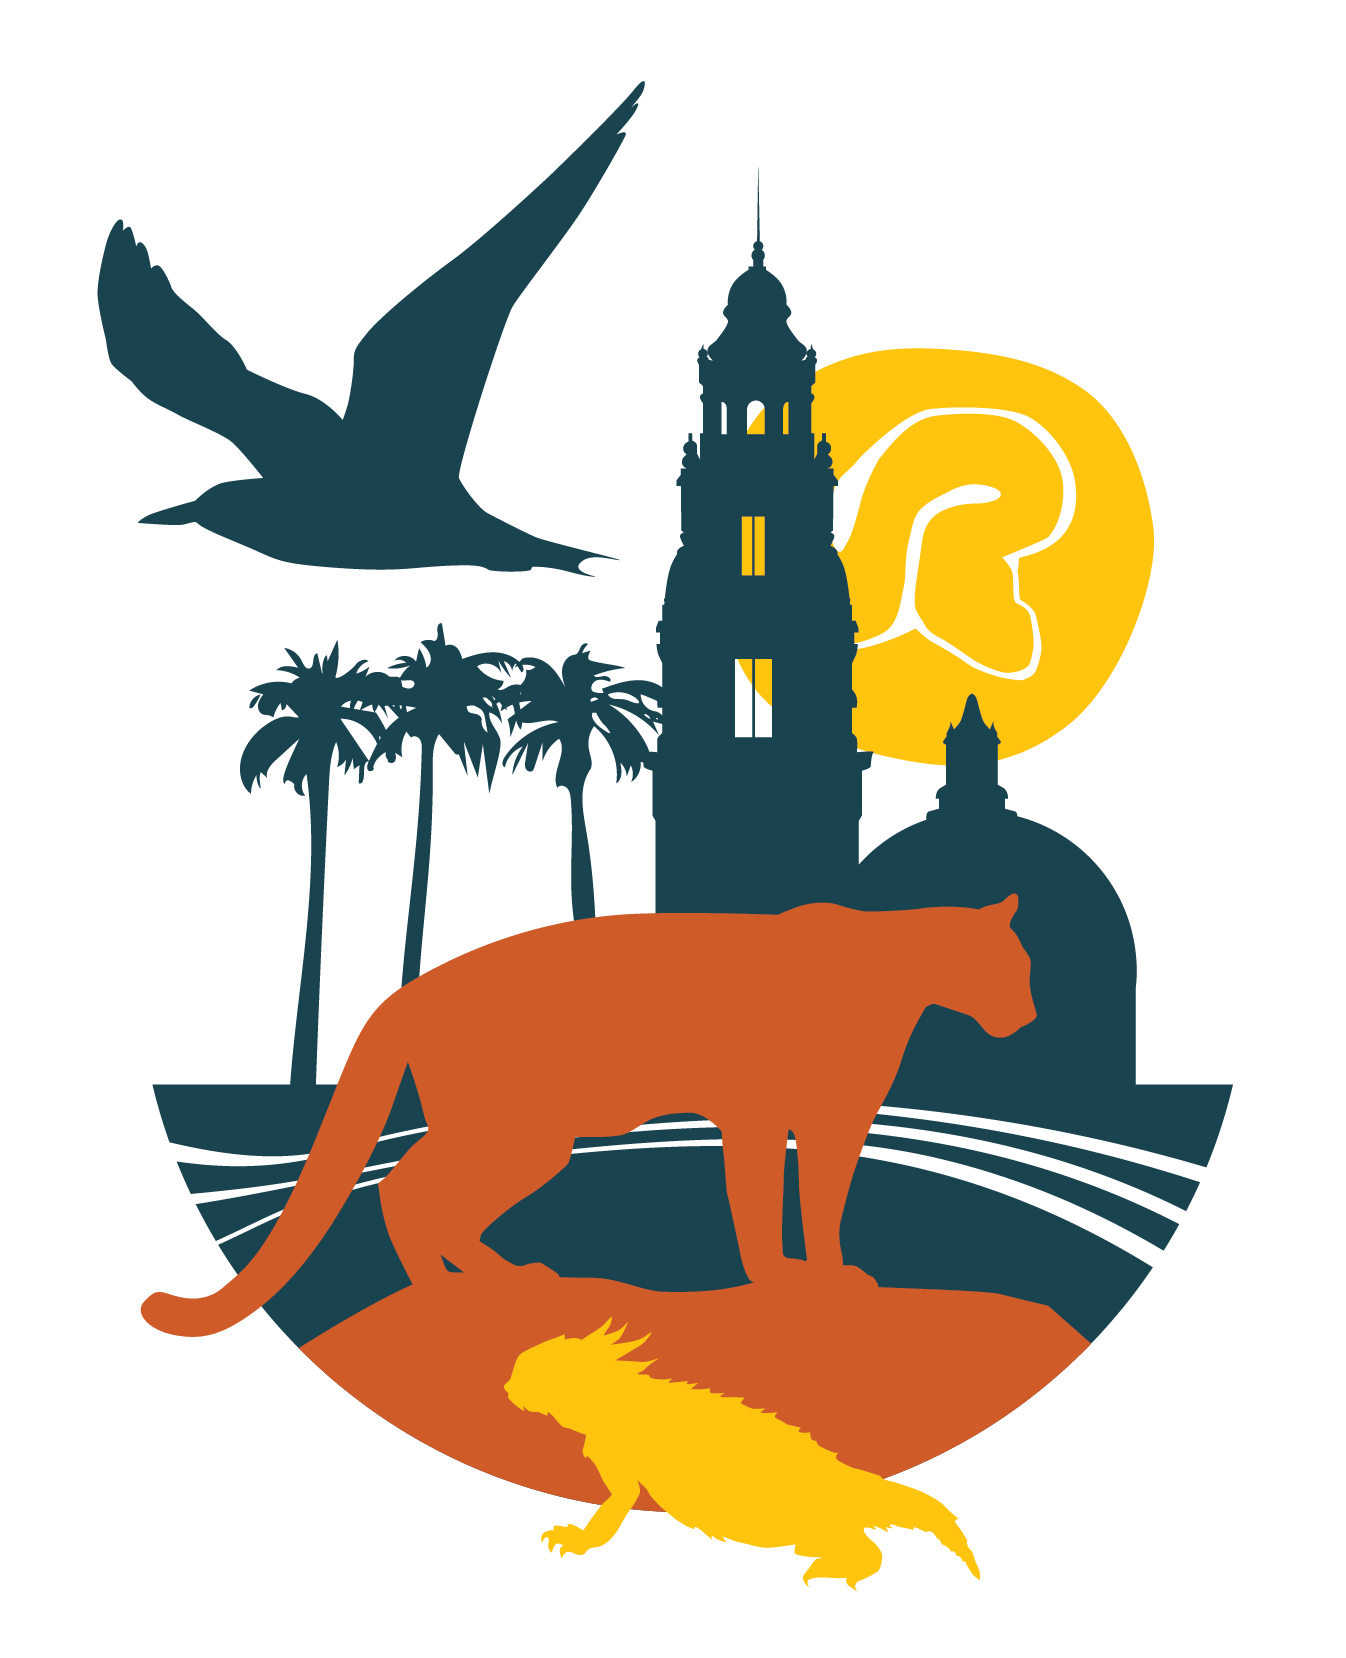 Urban wildlife worth a. Conference clipart international conference